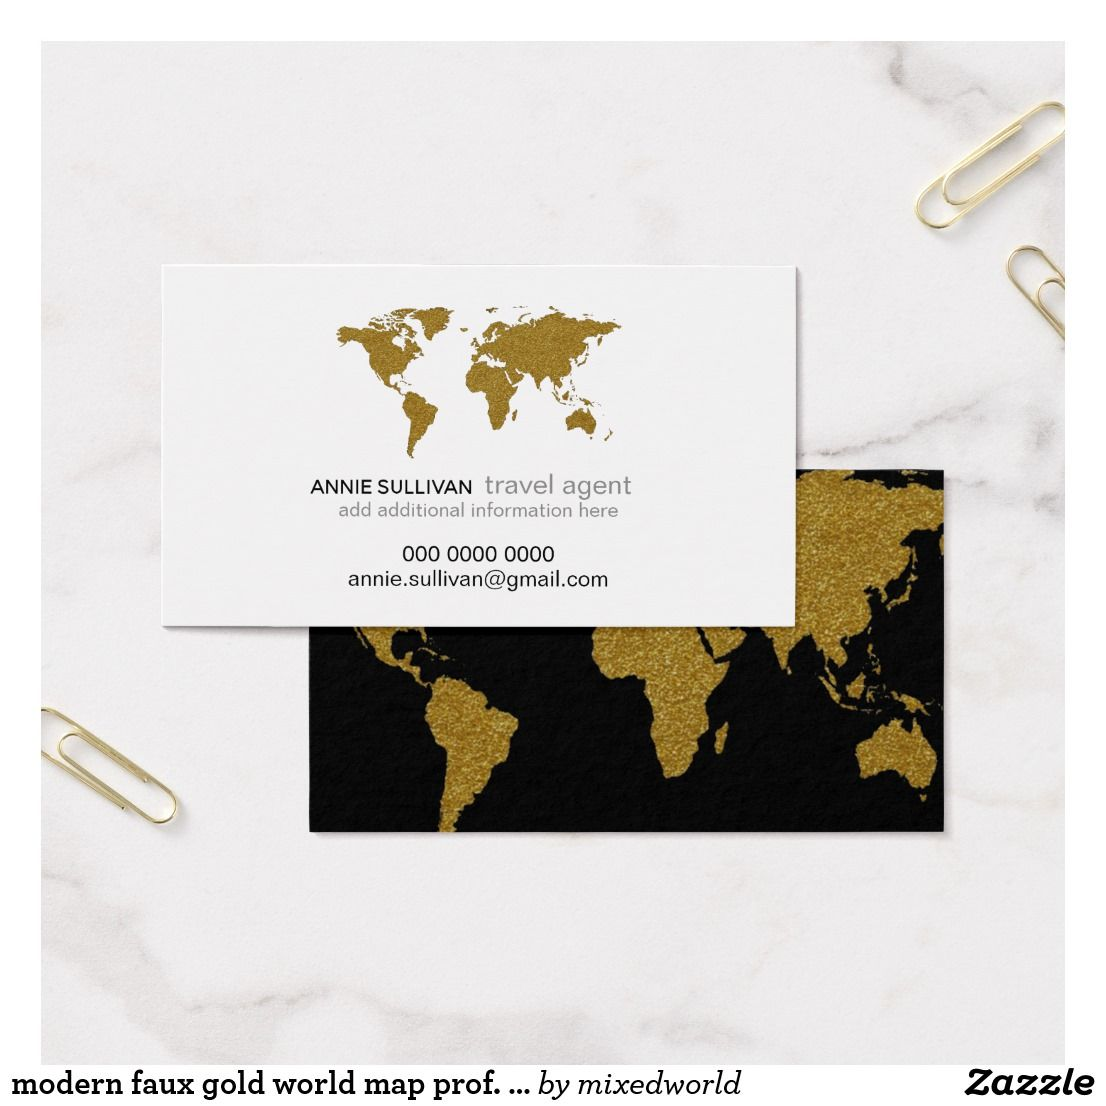 modern faux gold world map prof. travel agent business card ...